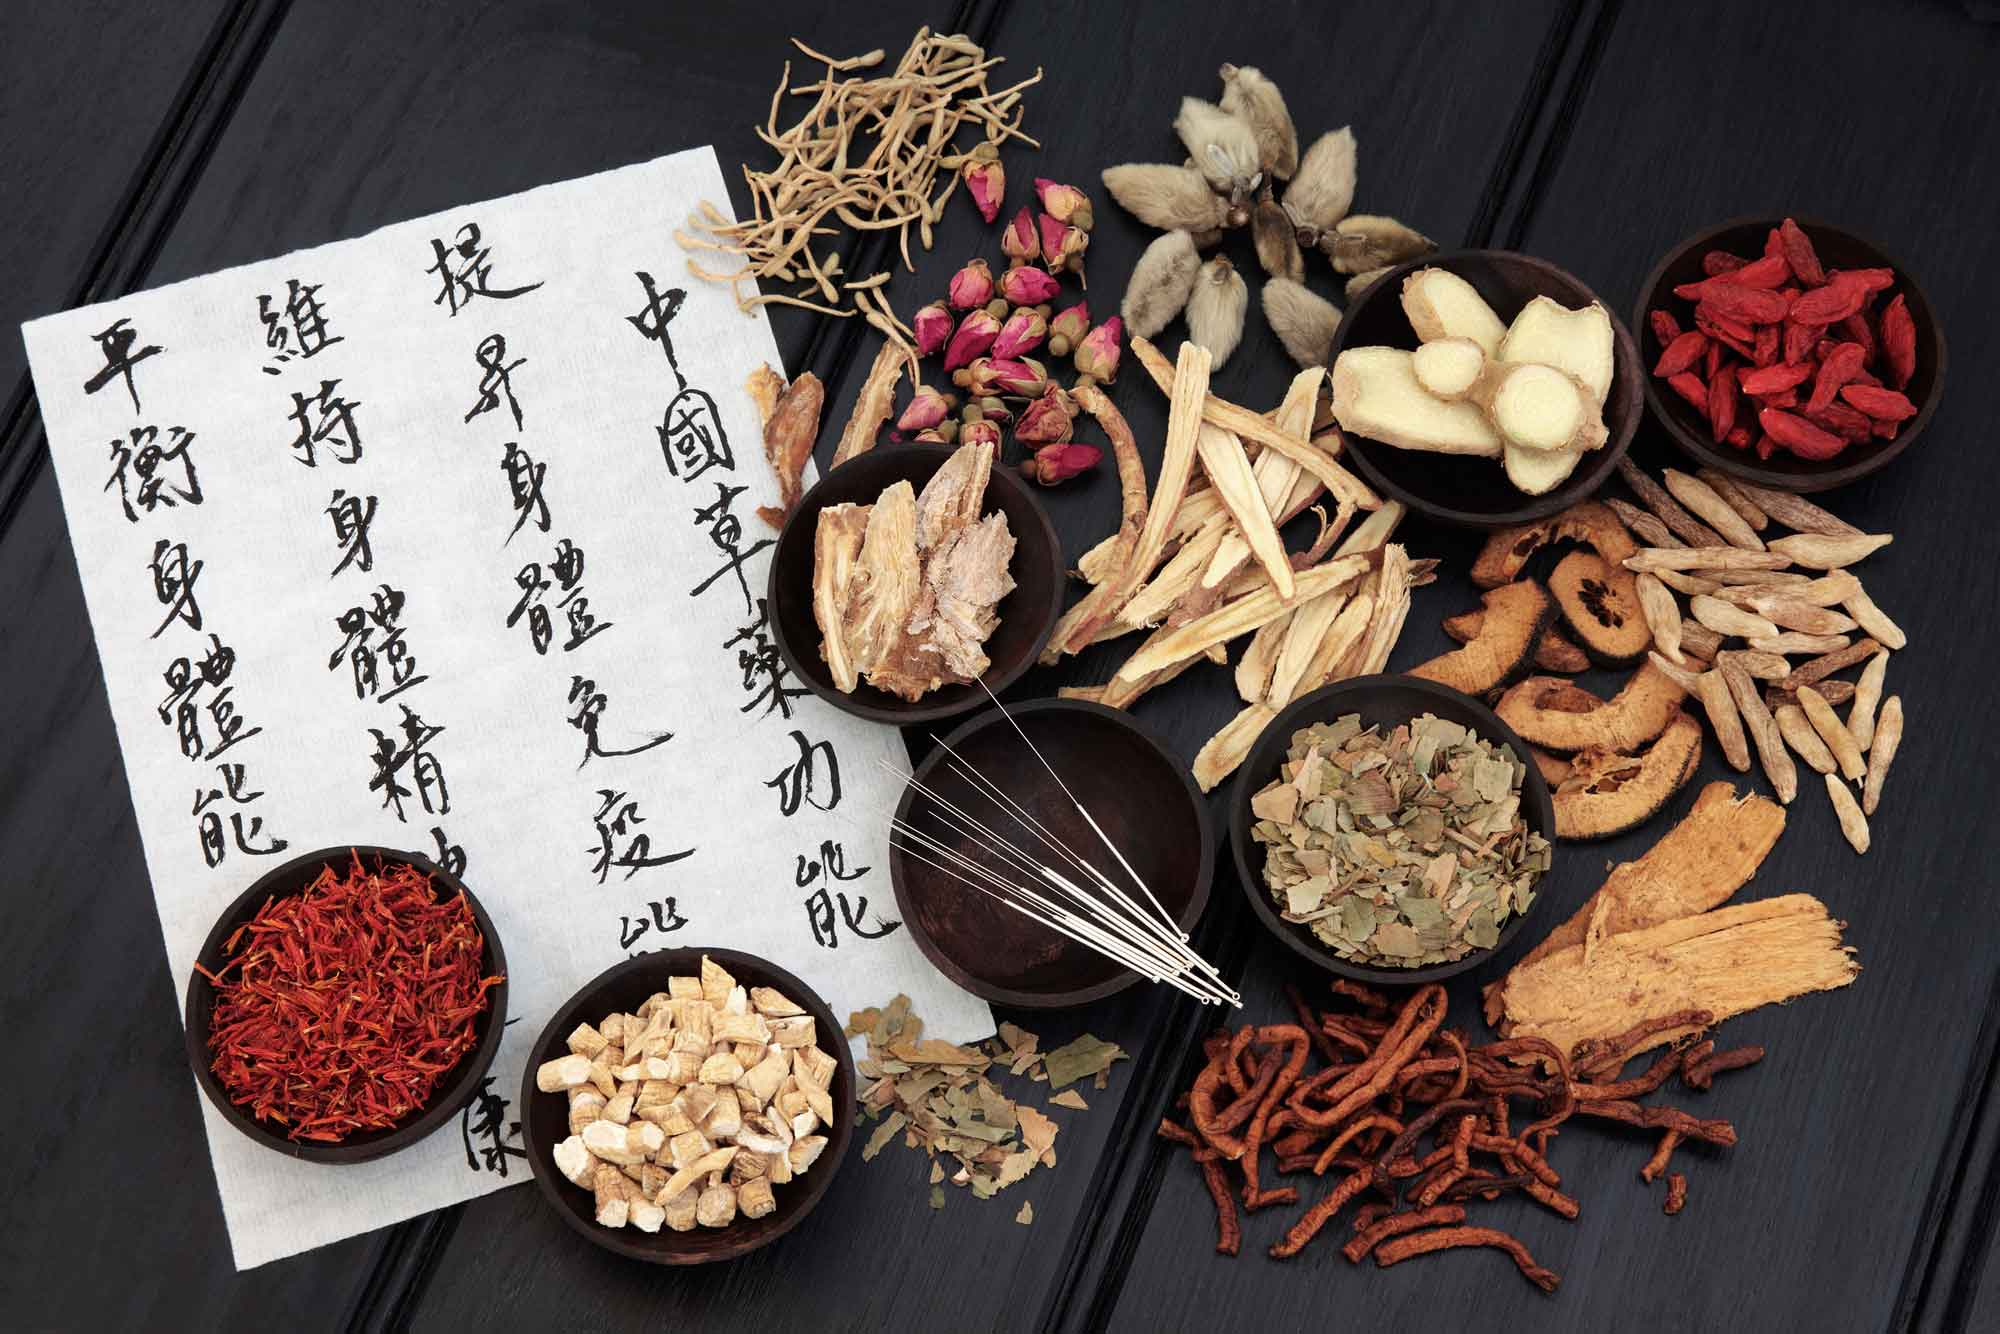 chinese medicine Best traditional chinese medicine in san diego, ca - wang acupuncture  chinese medicine, san diego herbal medicine & acupuncture, vinh hoa hong.